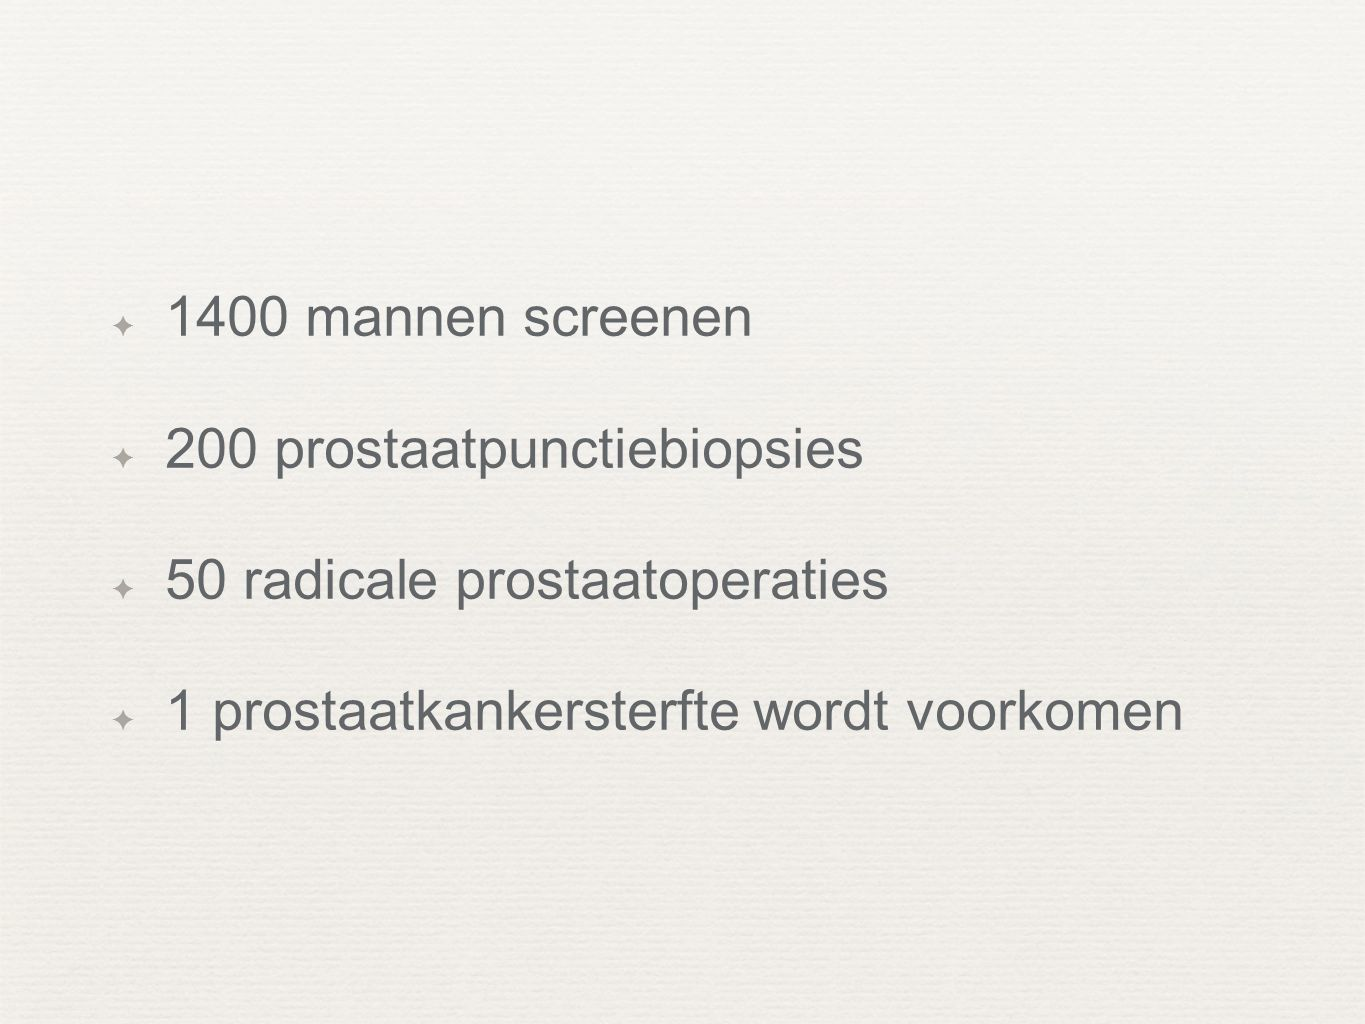 1400 mannen screenen 200 prostaatpunctiebiopsies. 50 radicale prostaatoperaties.